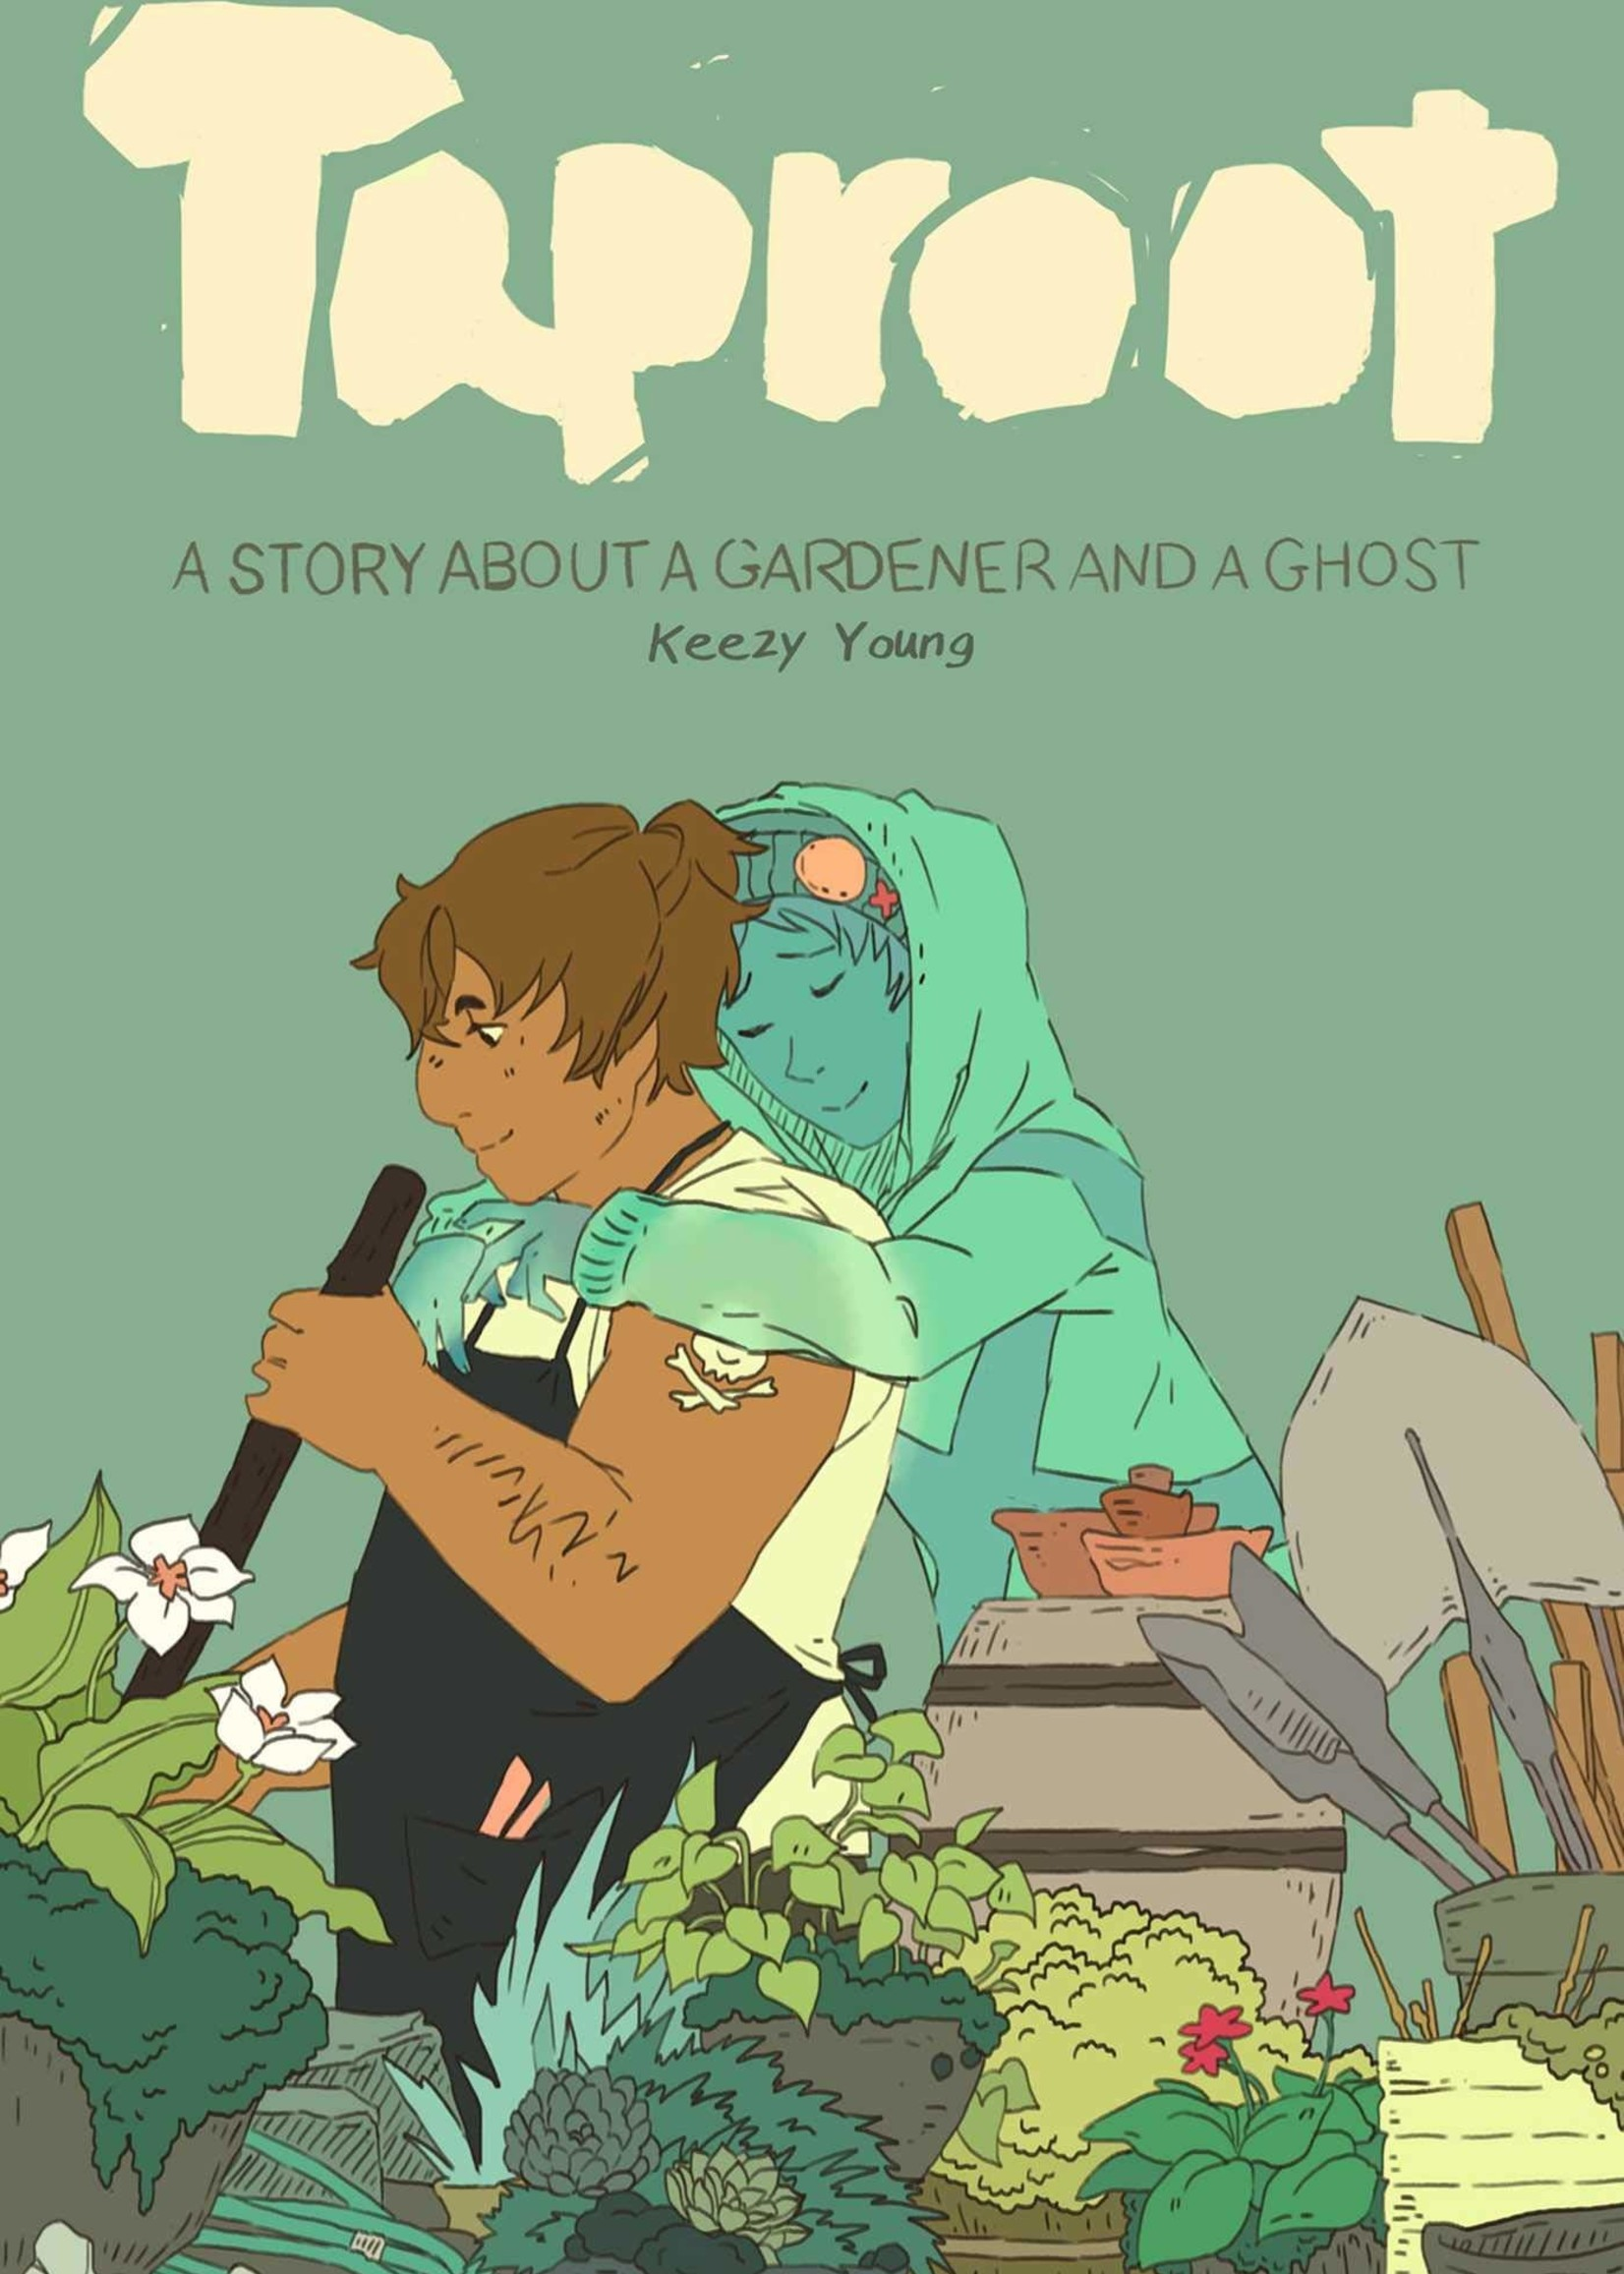 Taproot, A Story About a Gardener and a Ghost Graphic Novel - Paperback